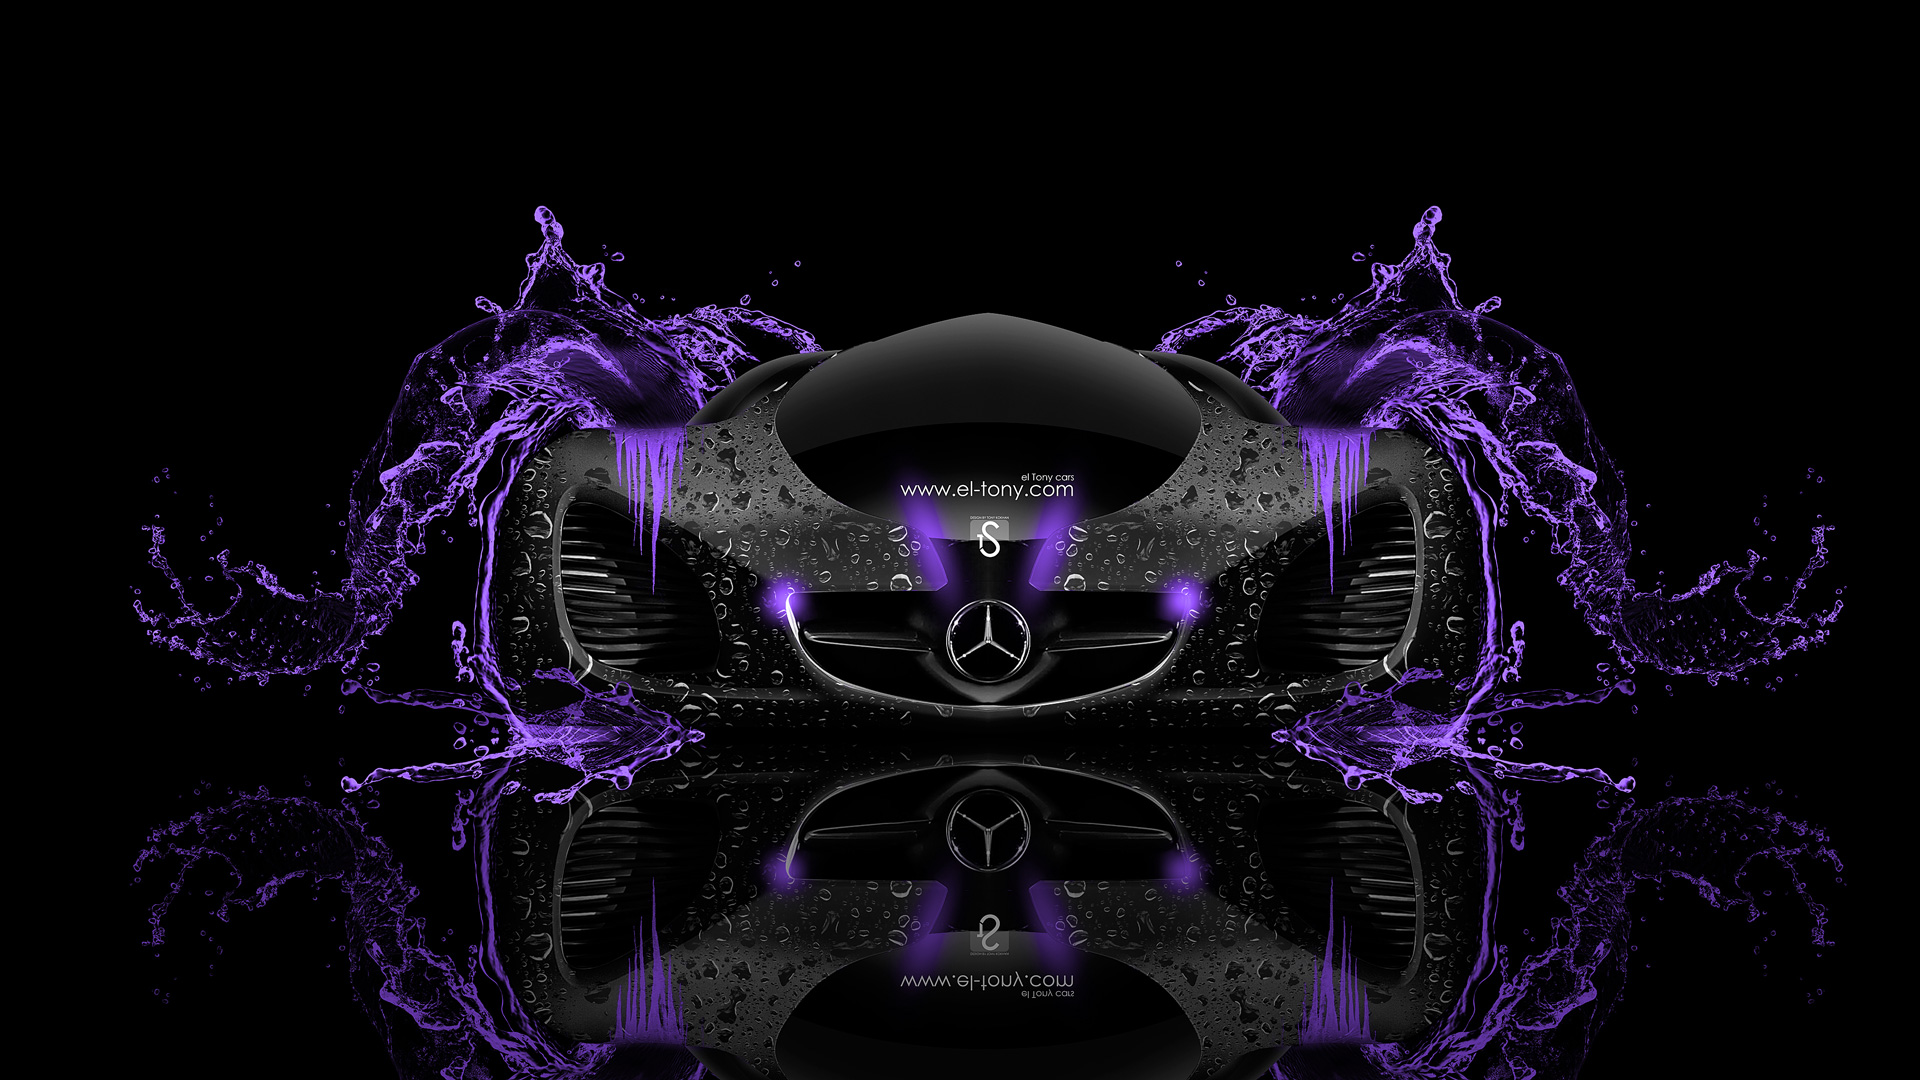 Mercedes benz biome fantasy water car 2014 el tony for Mercedes benz biome